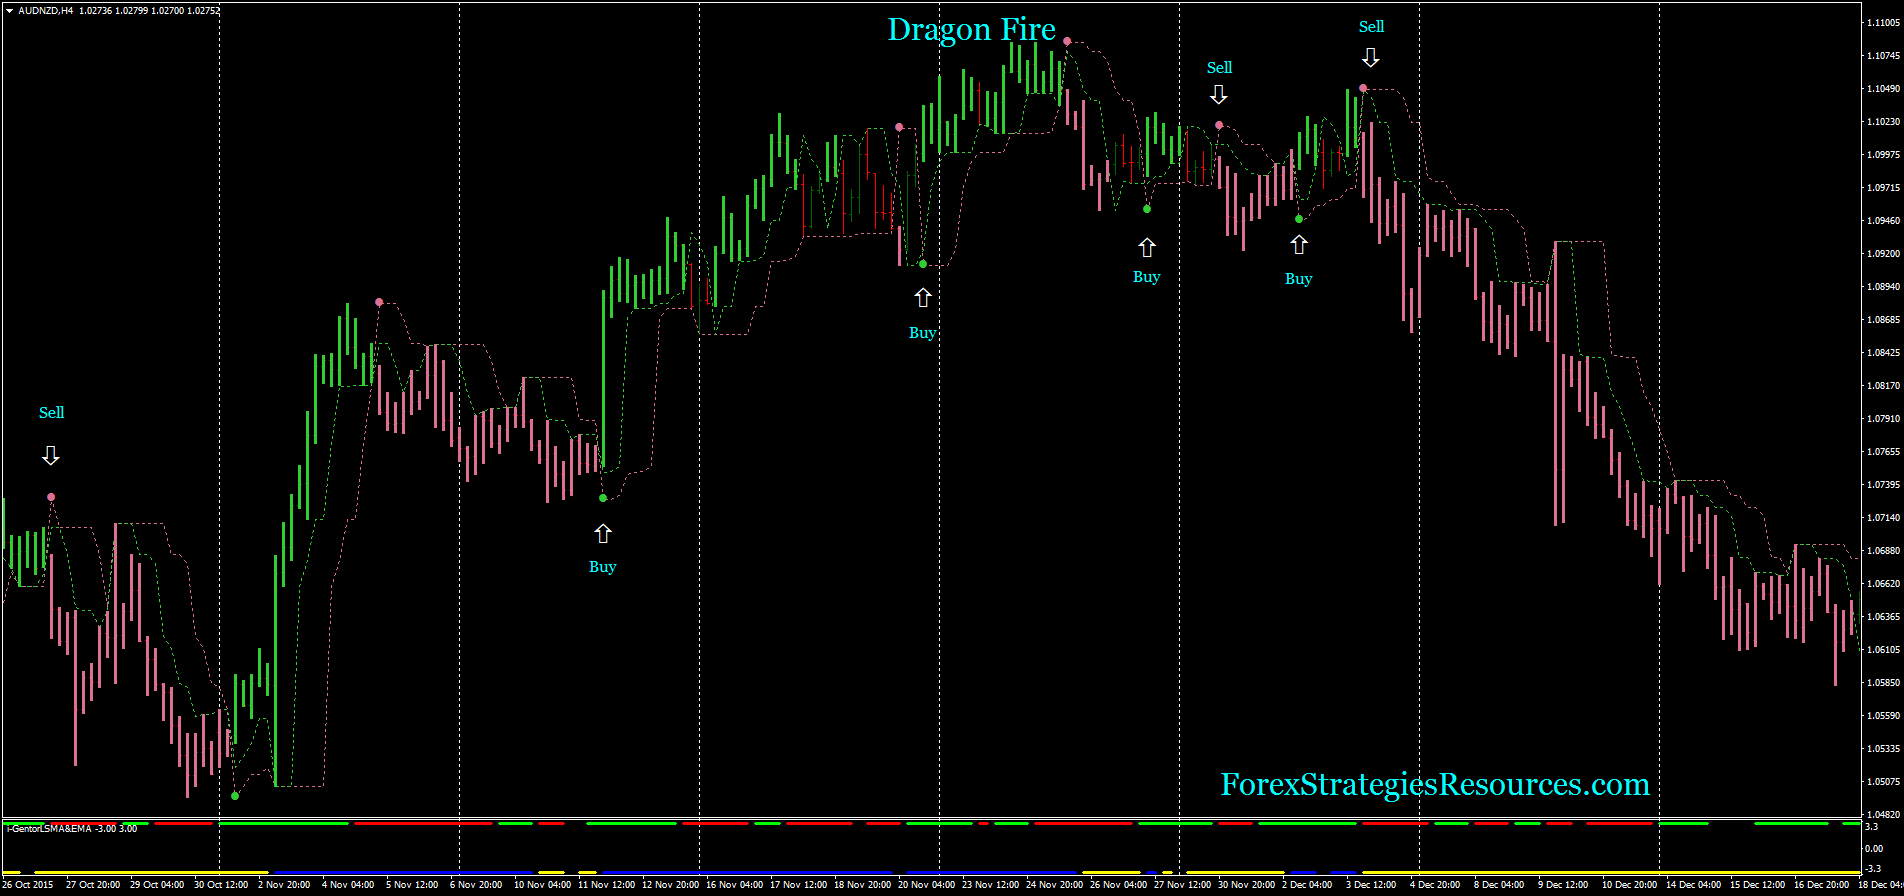 Dragon Fire - Forex Strategies - Forex Resources - Forex Trading-free forex trading signals and ...